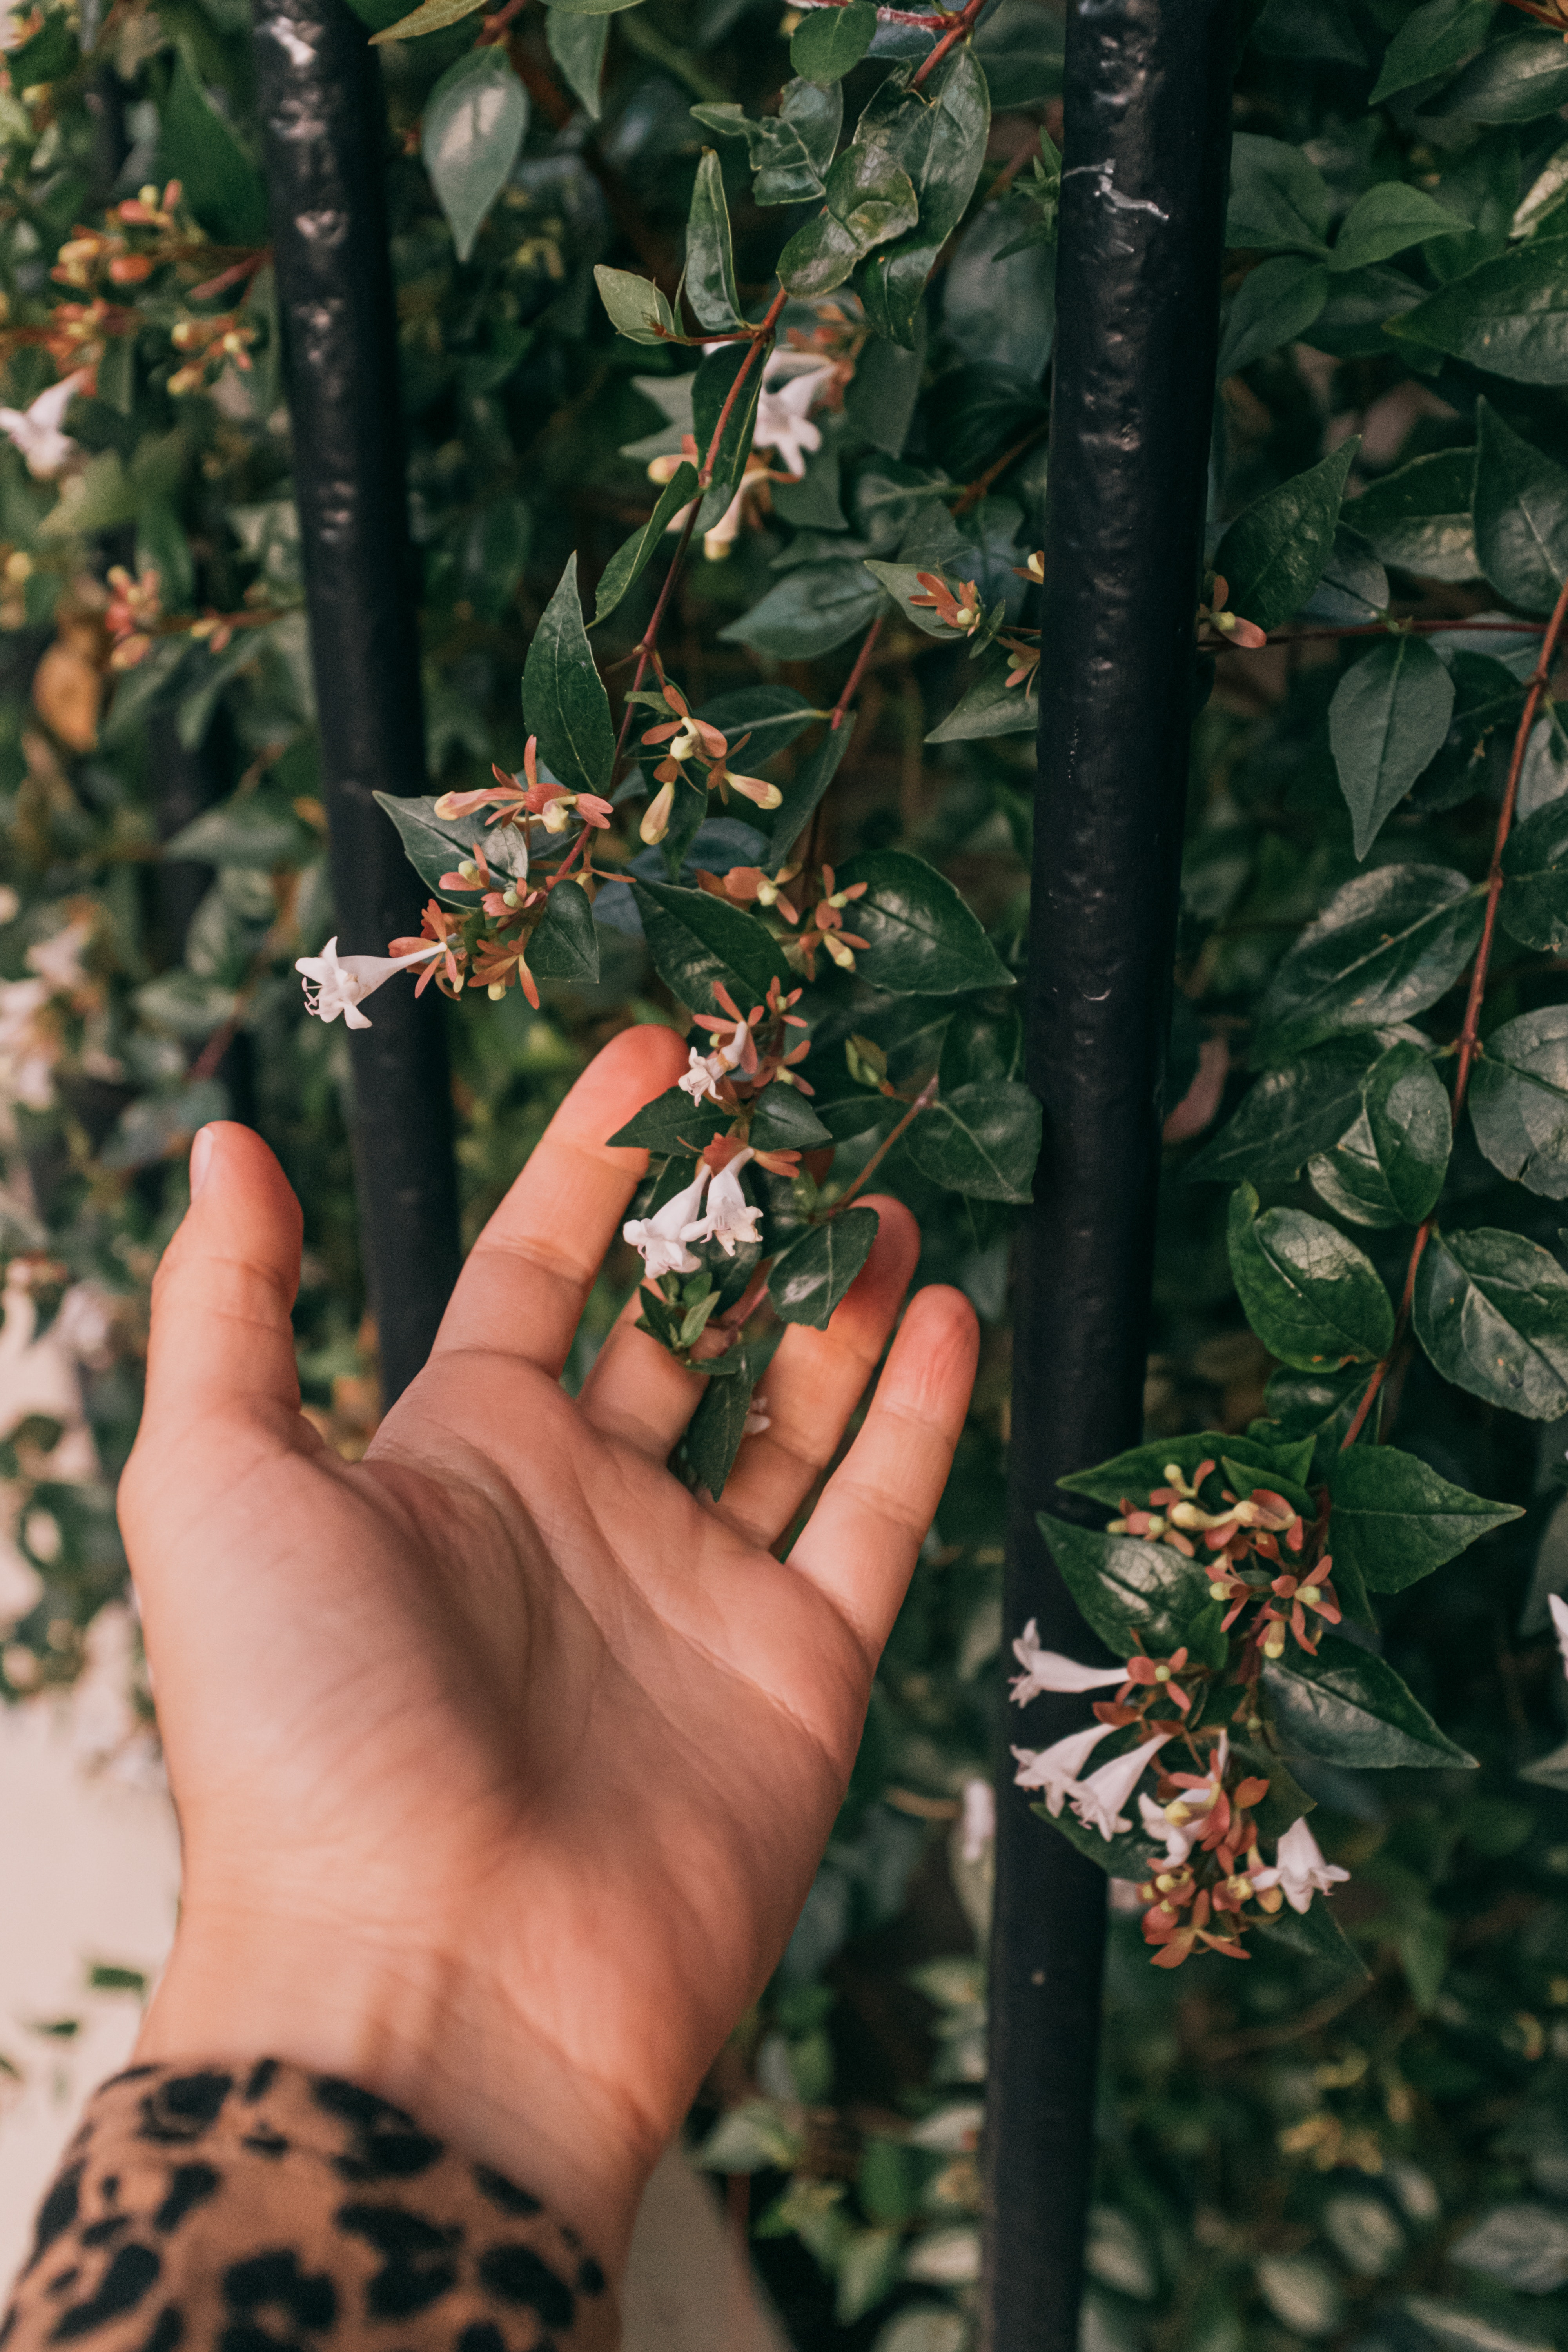 Hand holding small flowers from a shrub